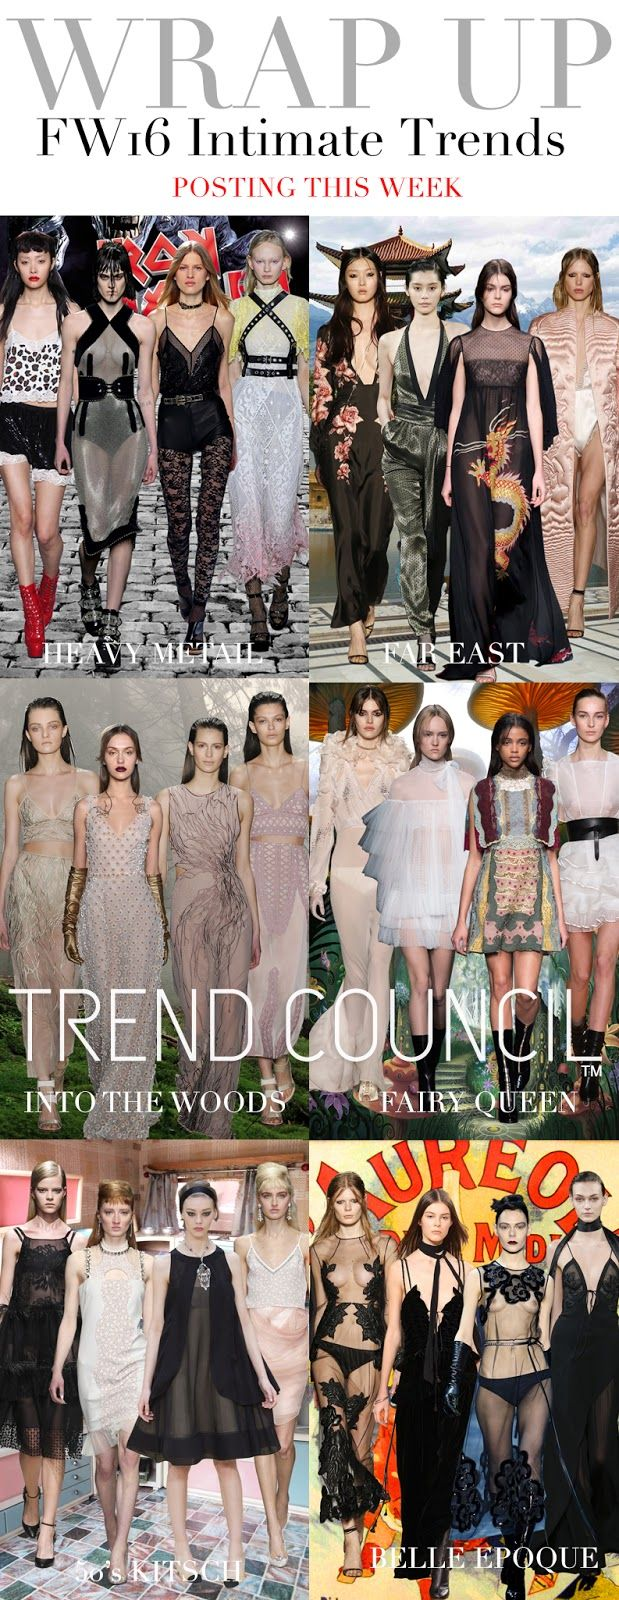 an analysis of fashion and trends Part of editd's secret sauce is the way it aggregates fashion trend and sales information from a wide variety of sources around the globe—from retail sites, social media, designer runway.